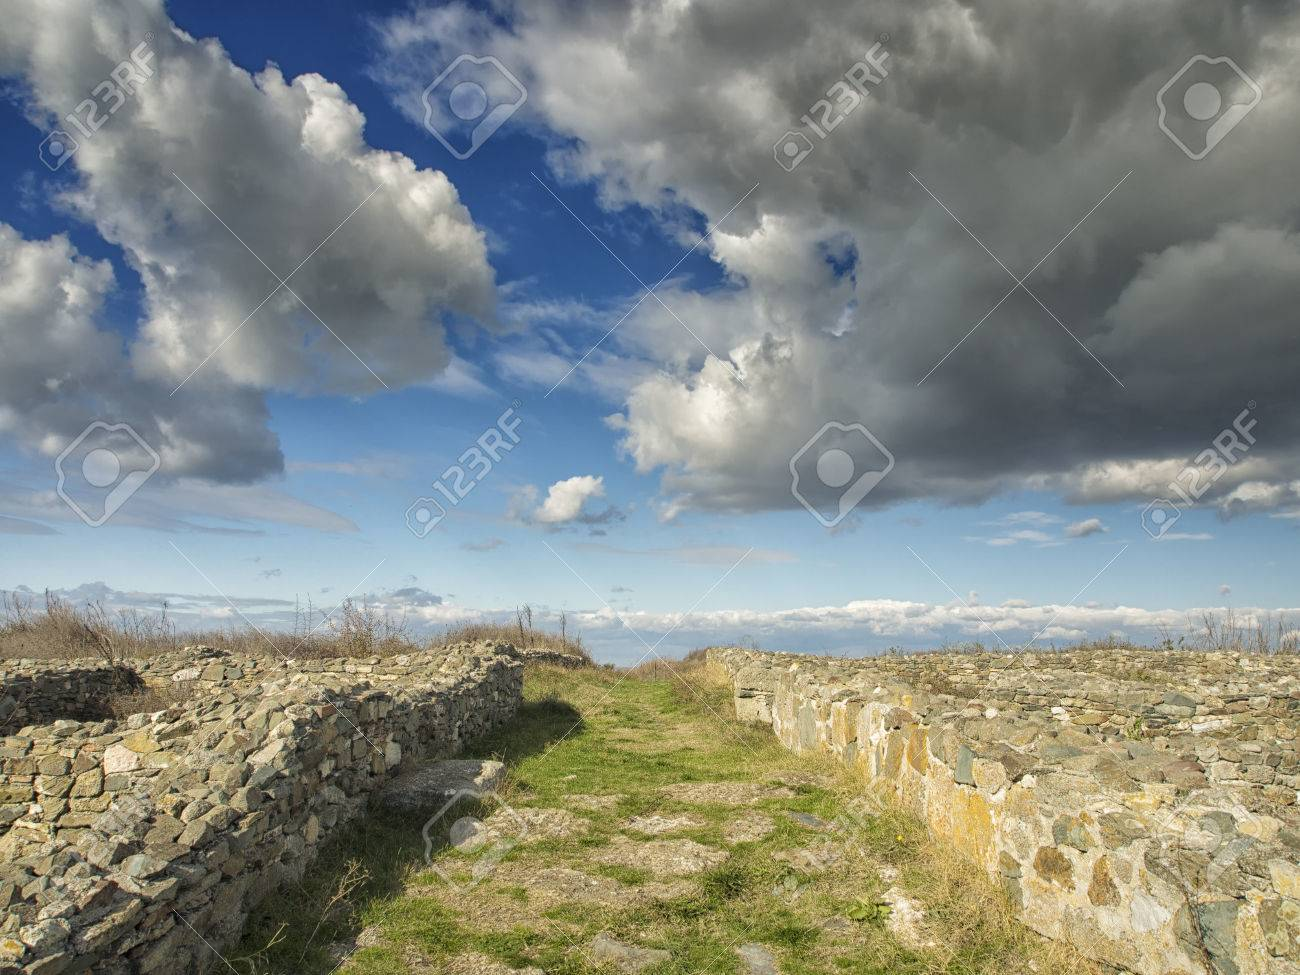 Dramatic Blue Sky With White Clouds Over The Ruins Of The Ancient